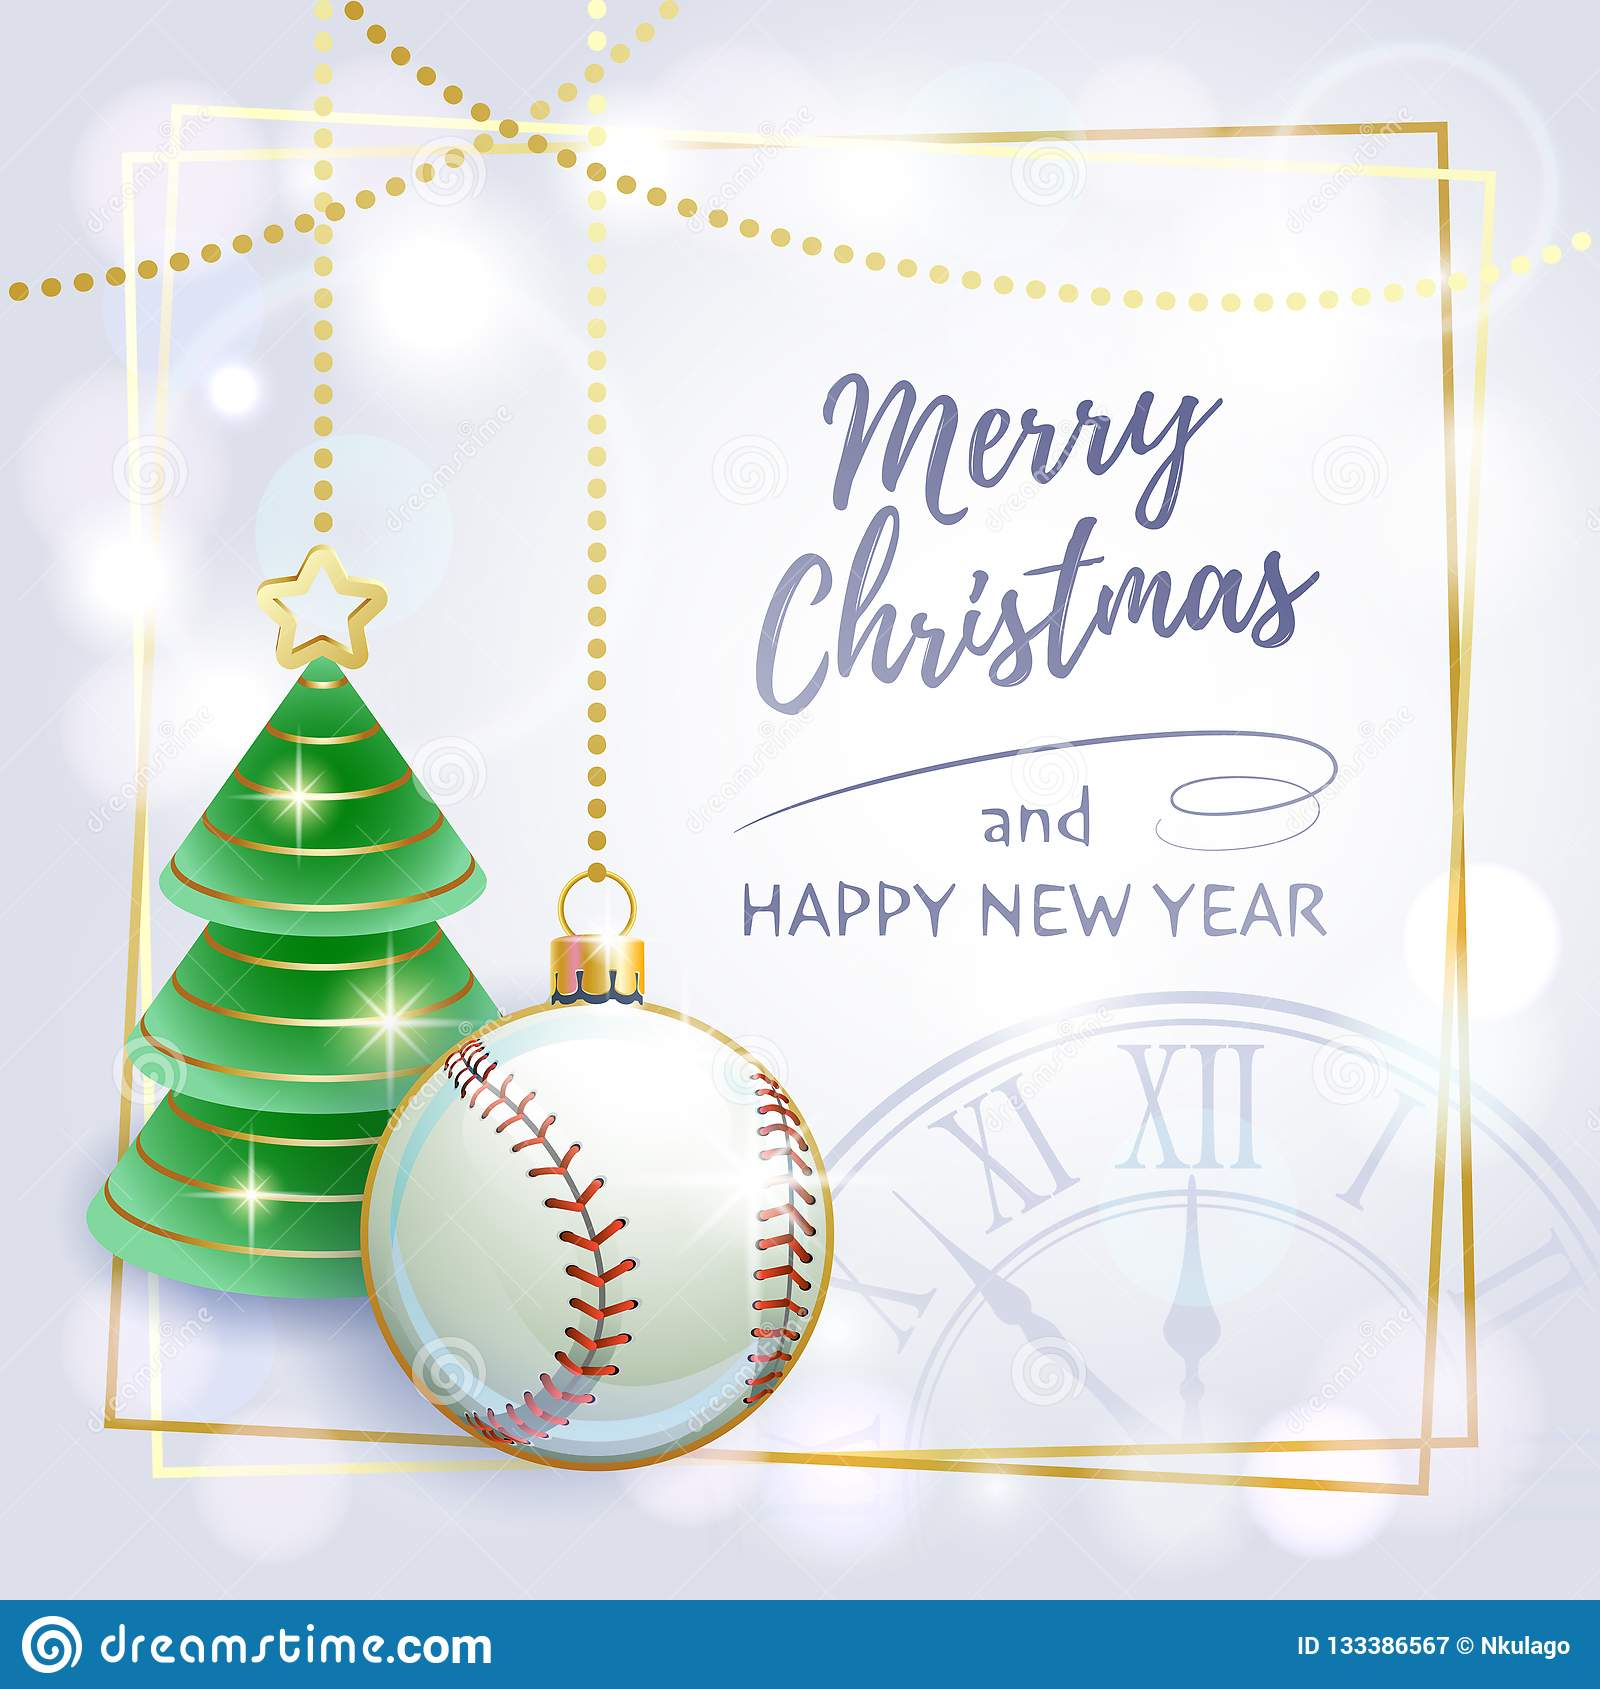 happy new year sports greeting card baseball